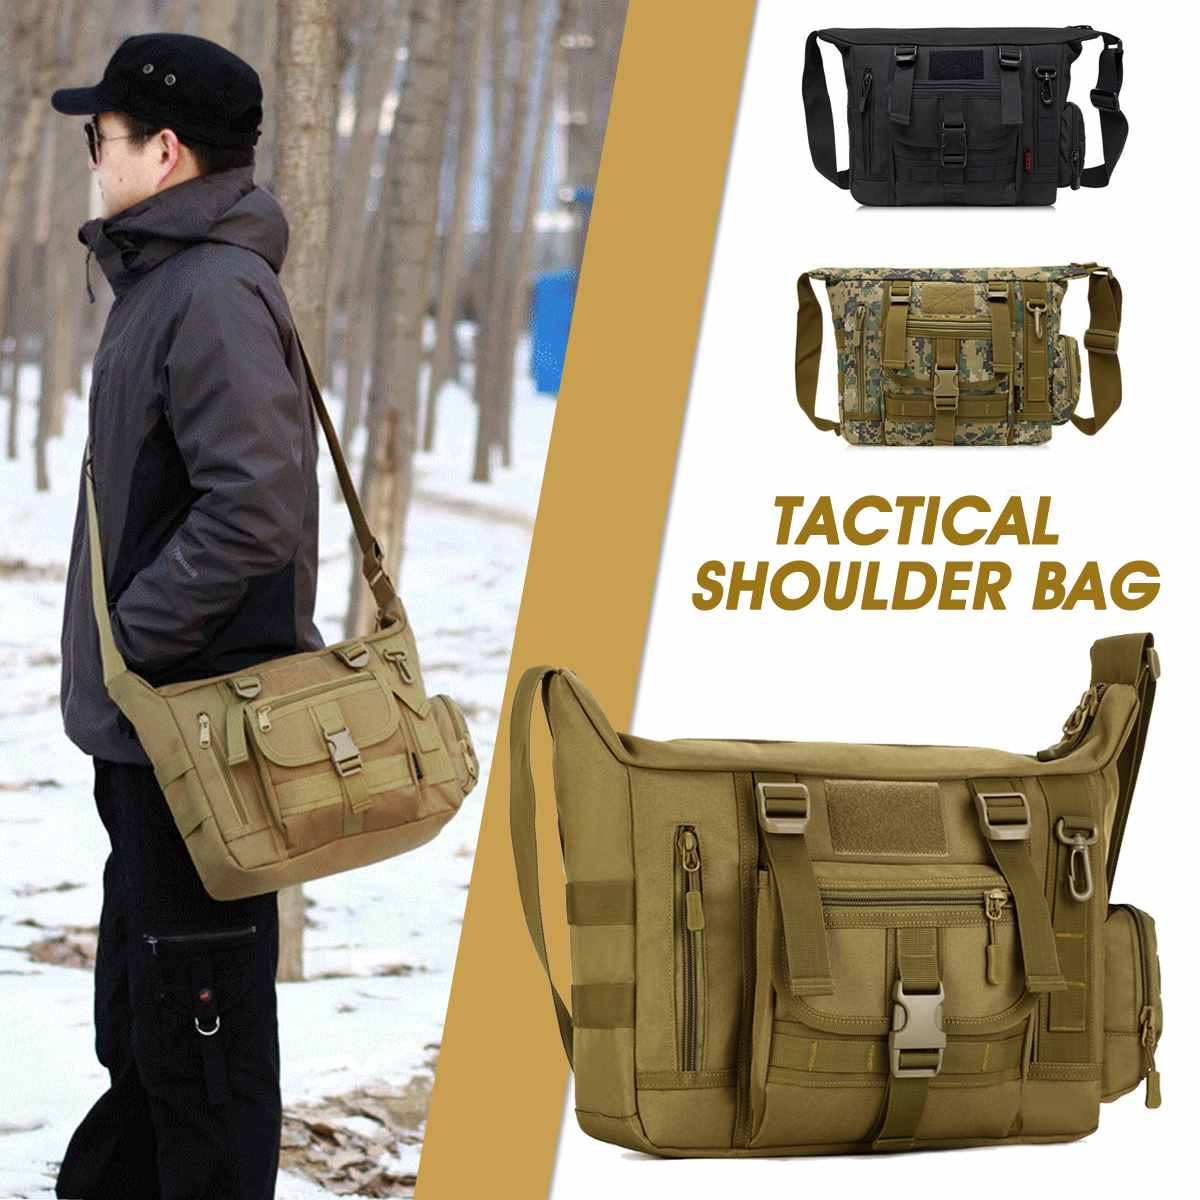 Osmond Outdoor Anti Theft Tactical Shoulder Bag Travel Camping Sports Handbags Hiking Fishing Hunting Climbing Trekking Backpack